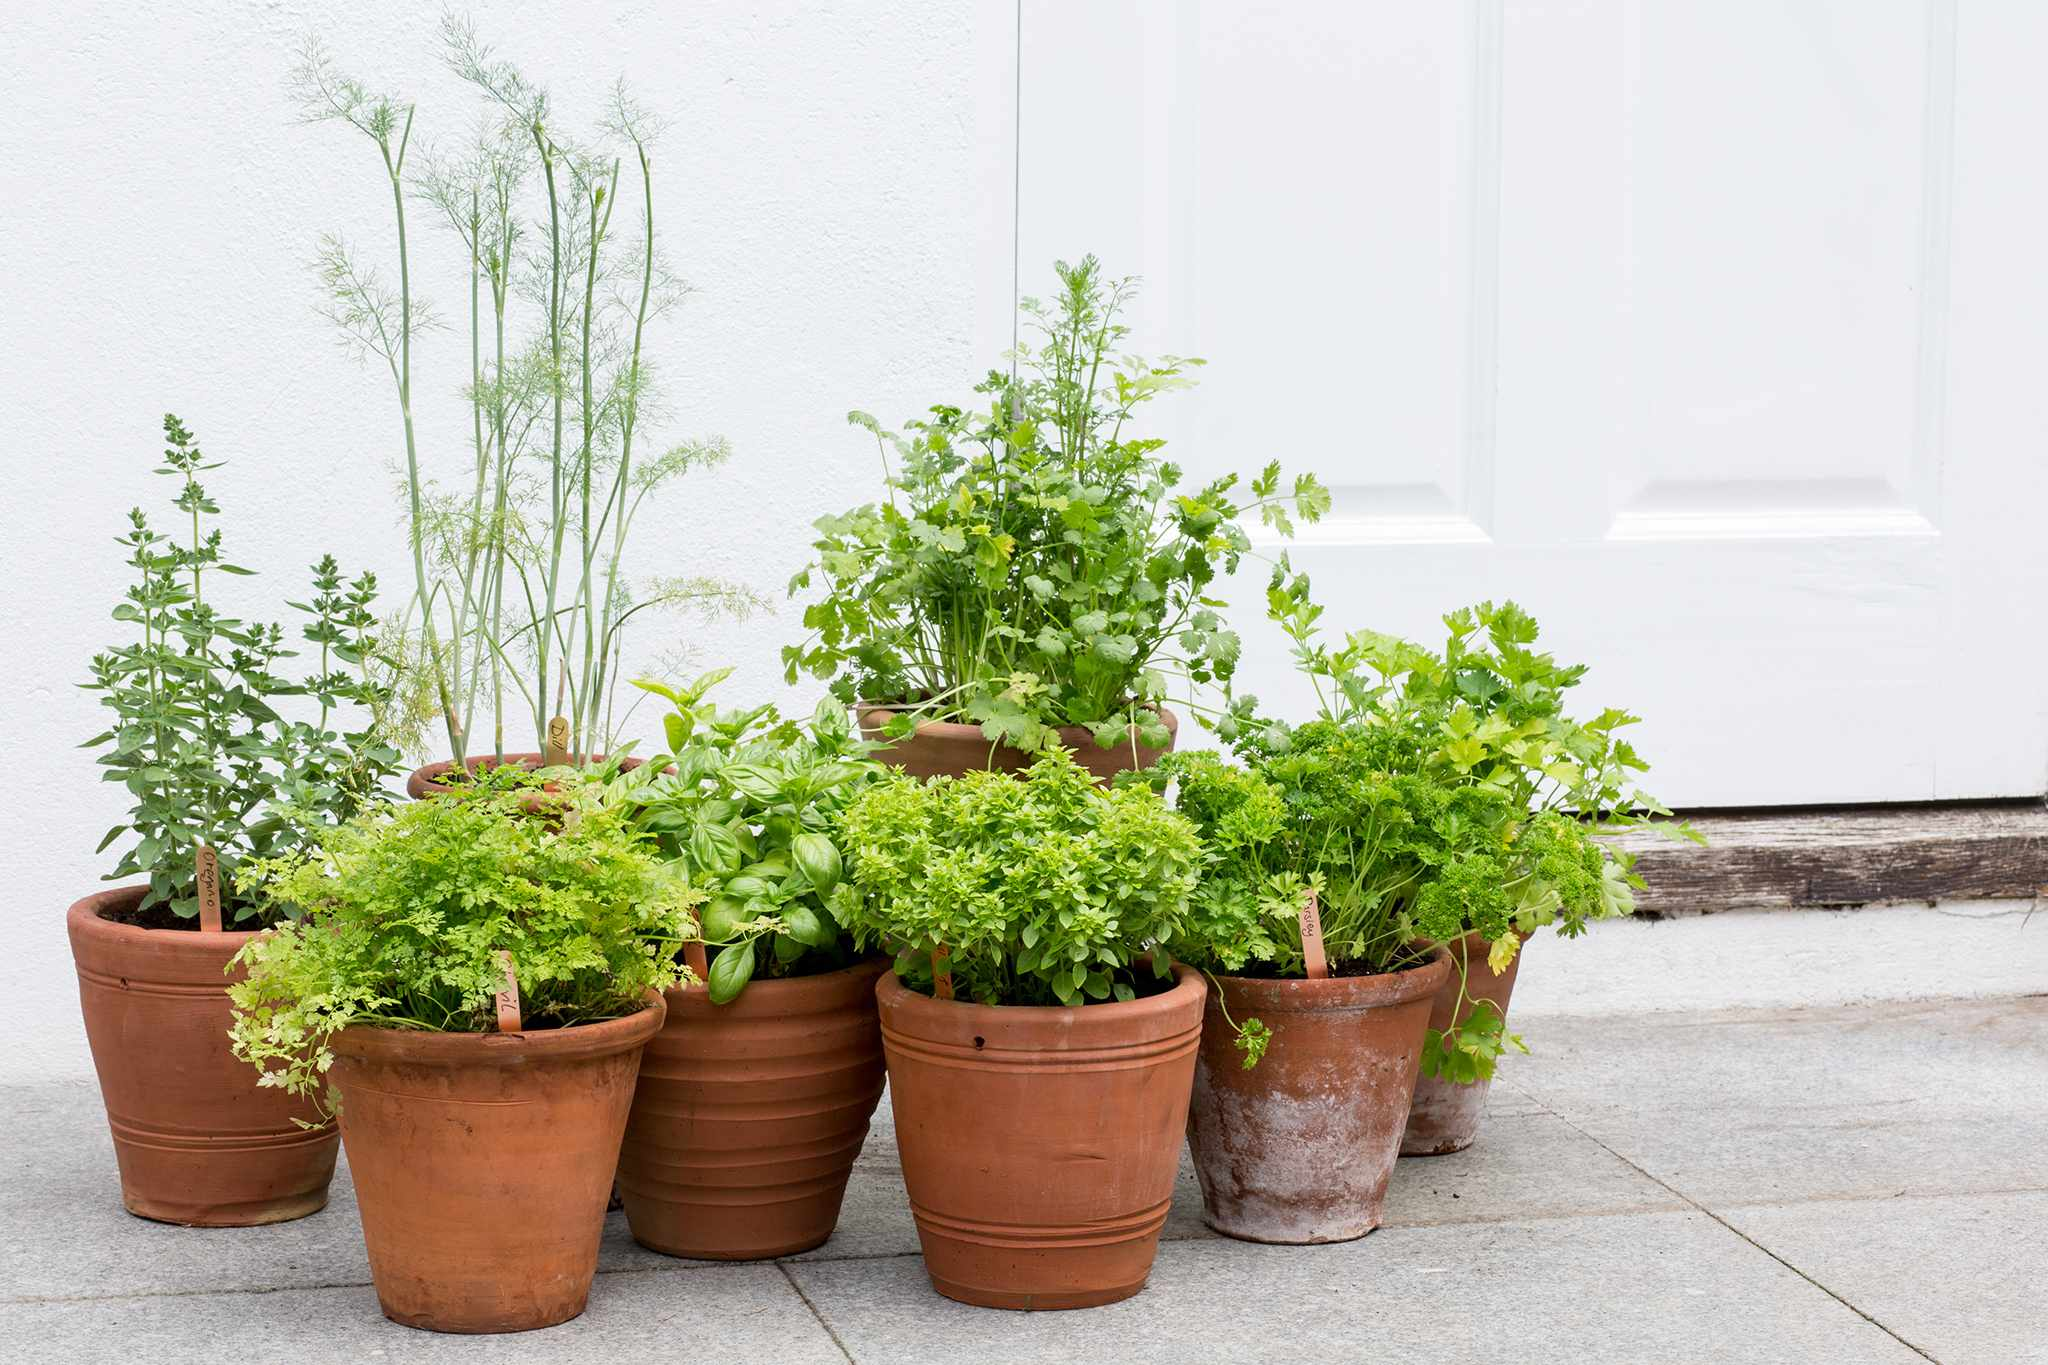 Group of potted herbs